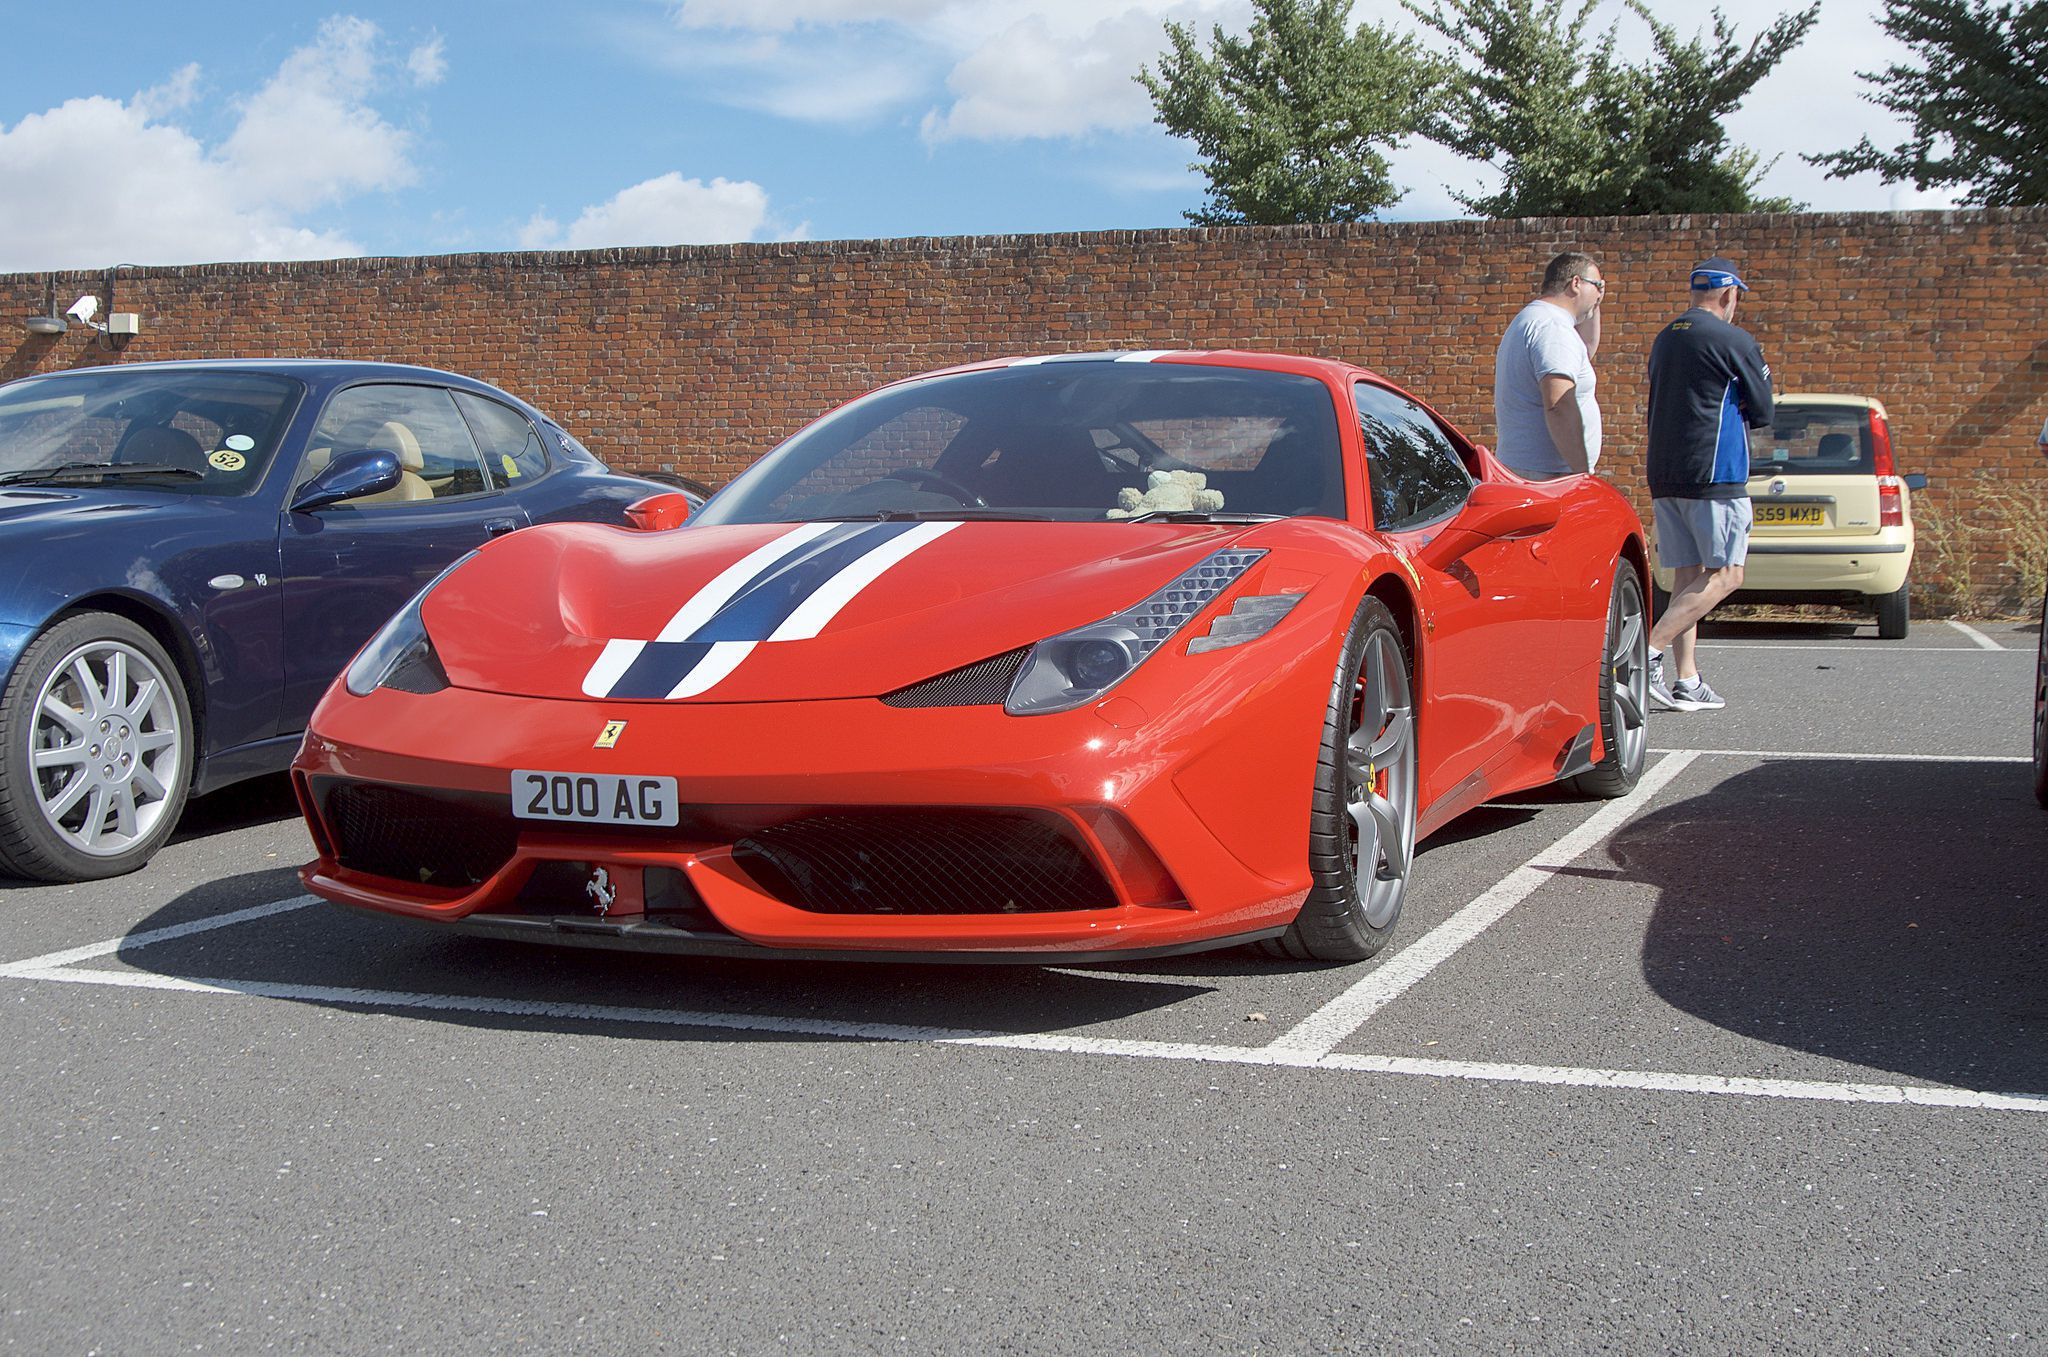 red super sport car - Ferrari Speciale 458